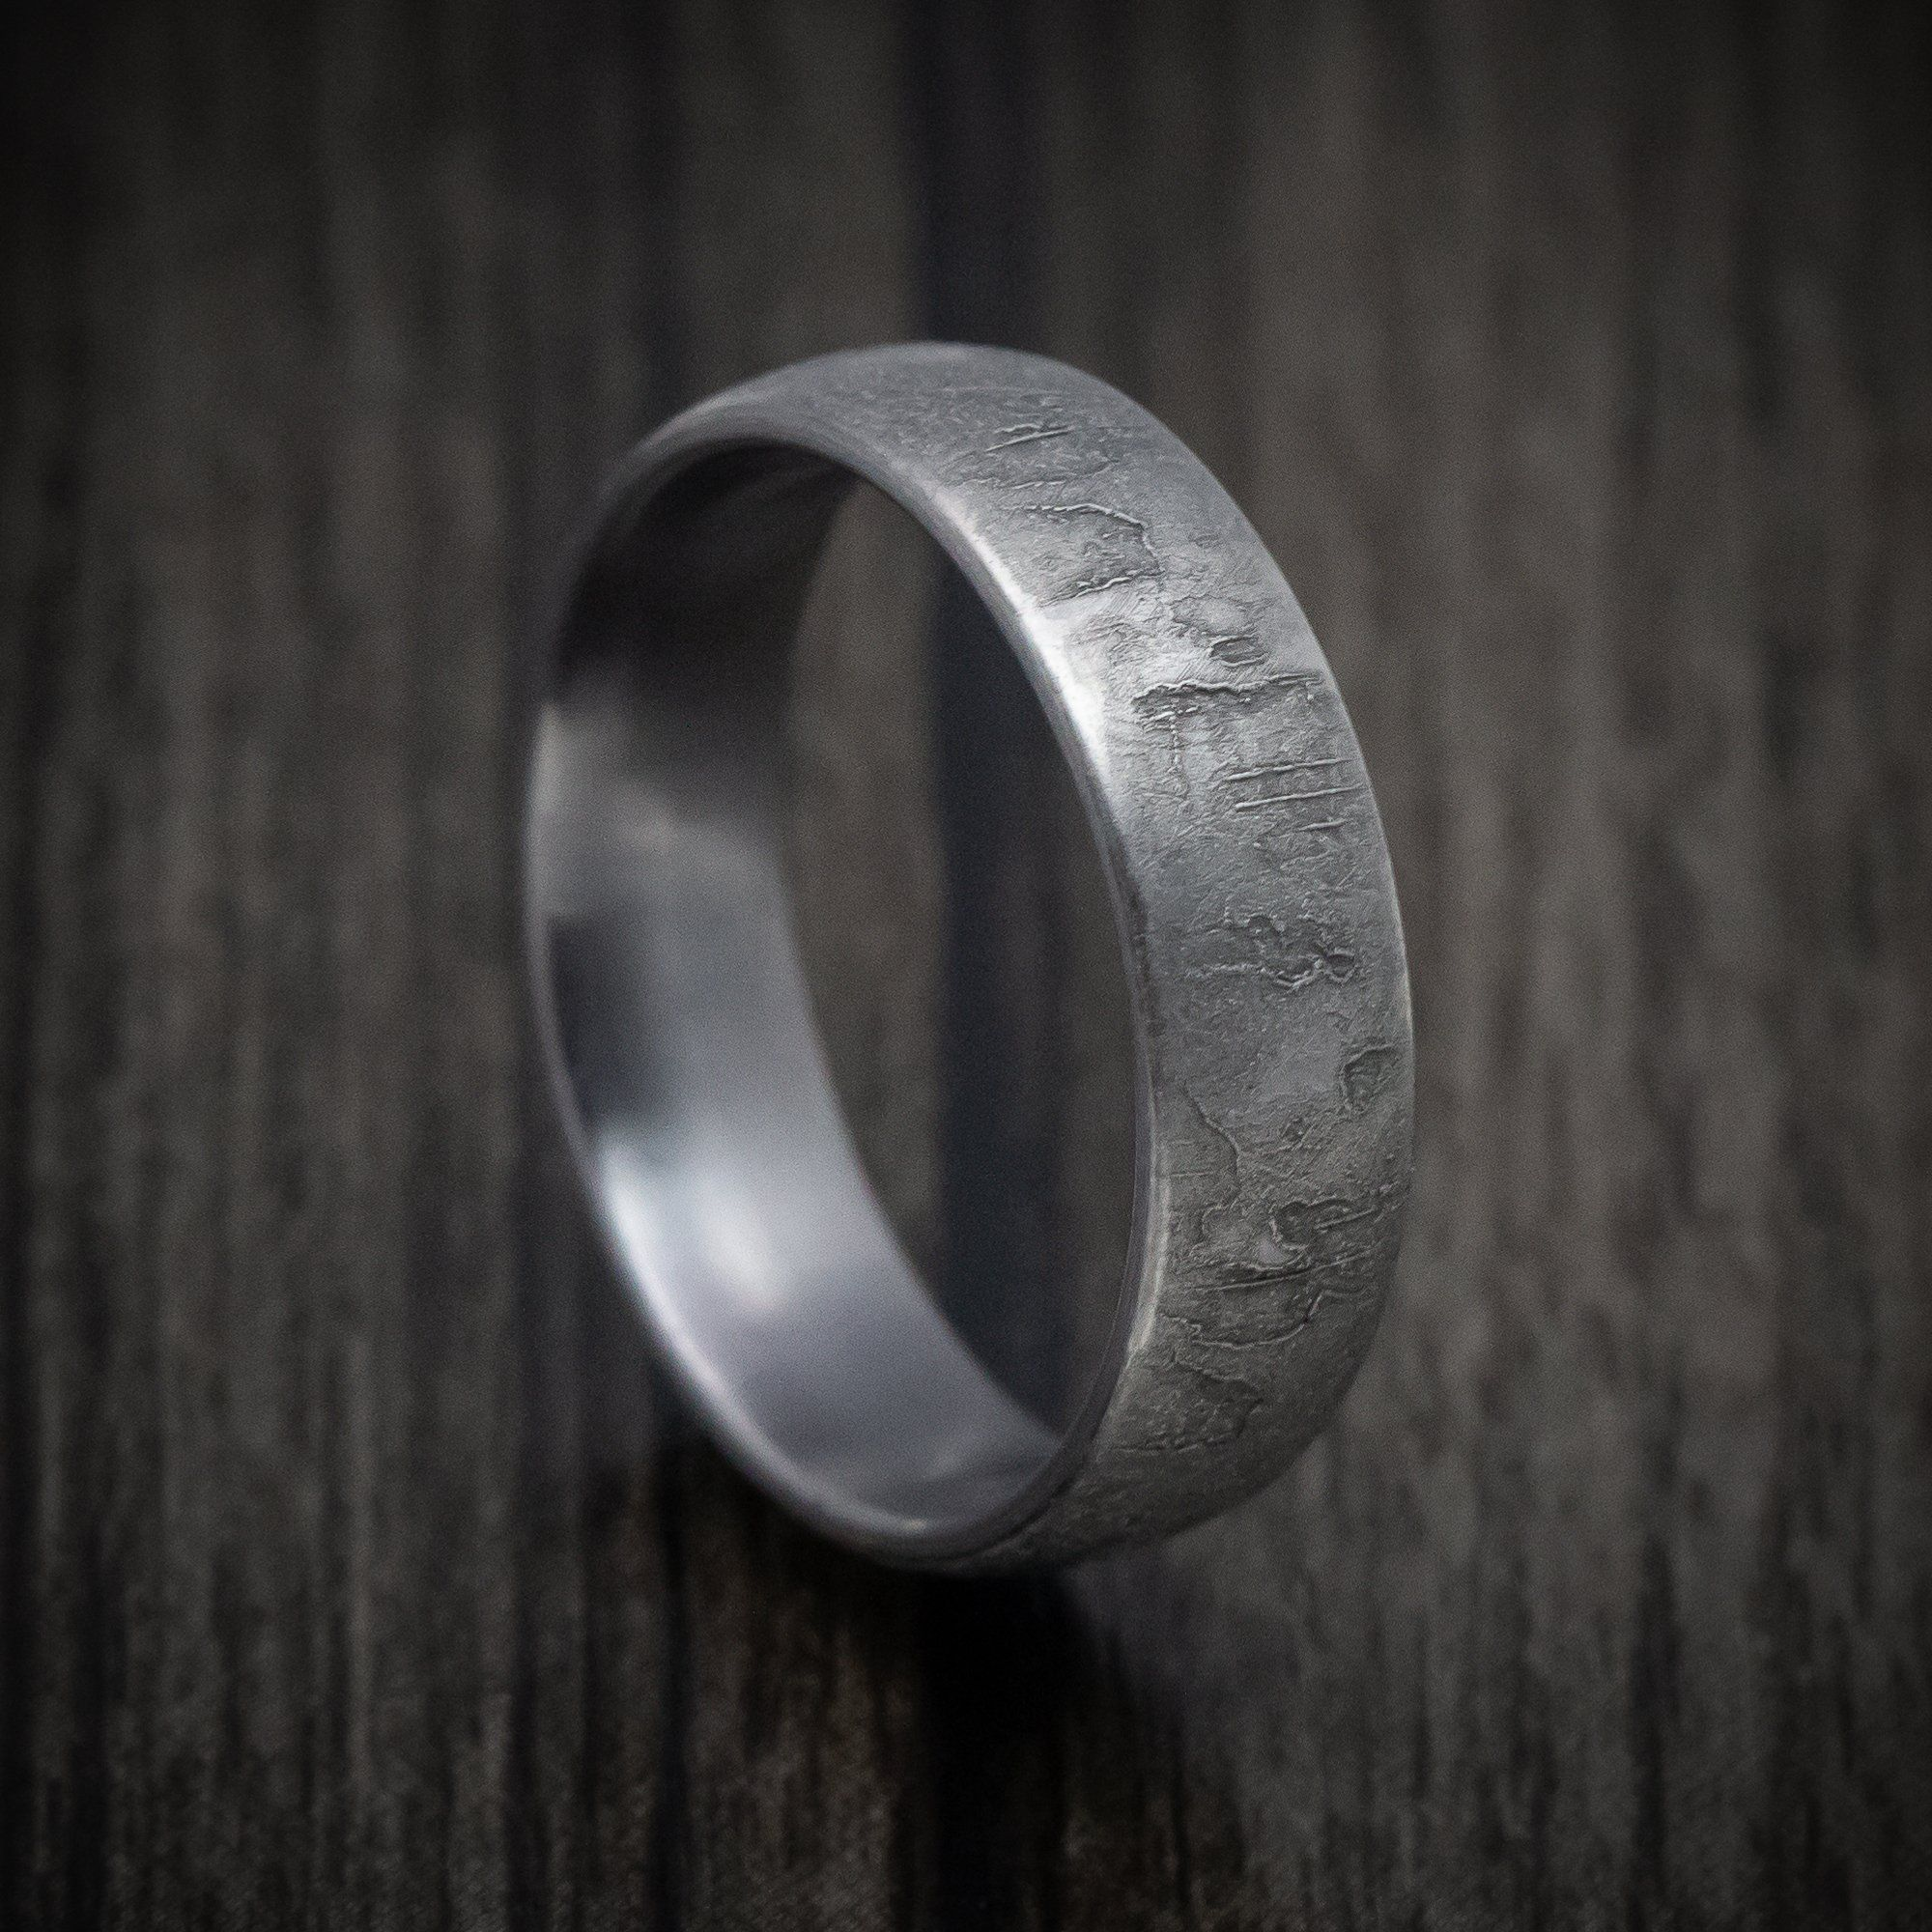 Textured Tantalum Wedding Band Wedding Bands Revolution Jewelry Band